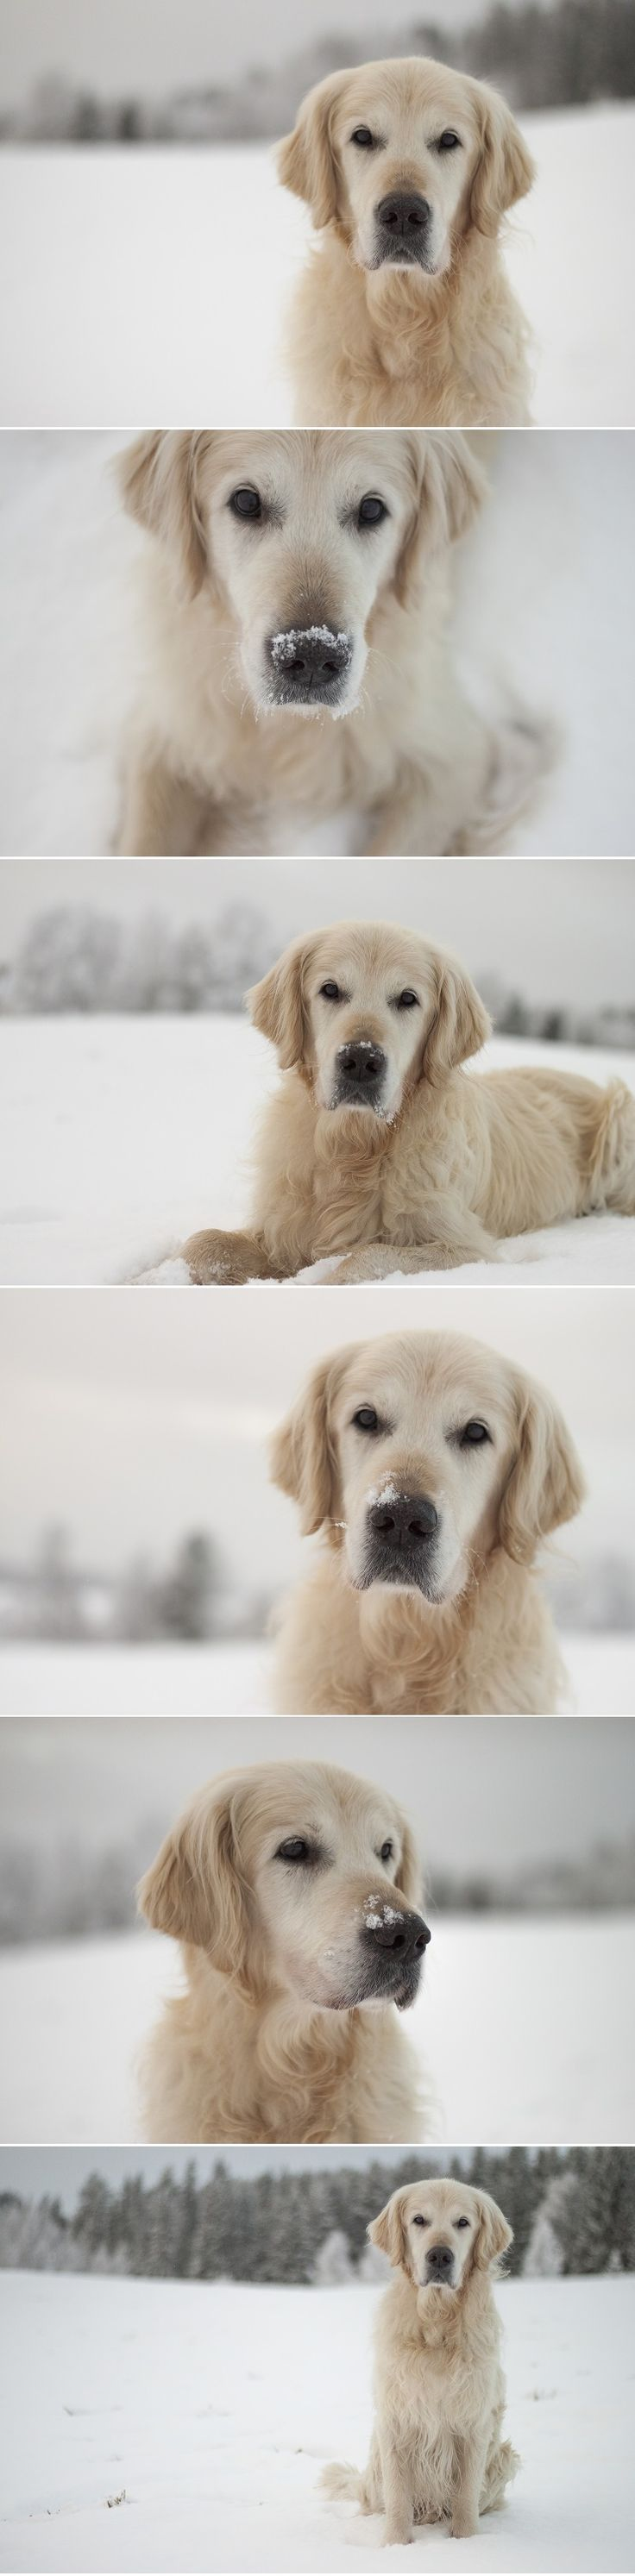 Tillvaron.se | Stina Golden retriever